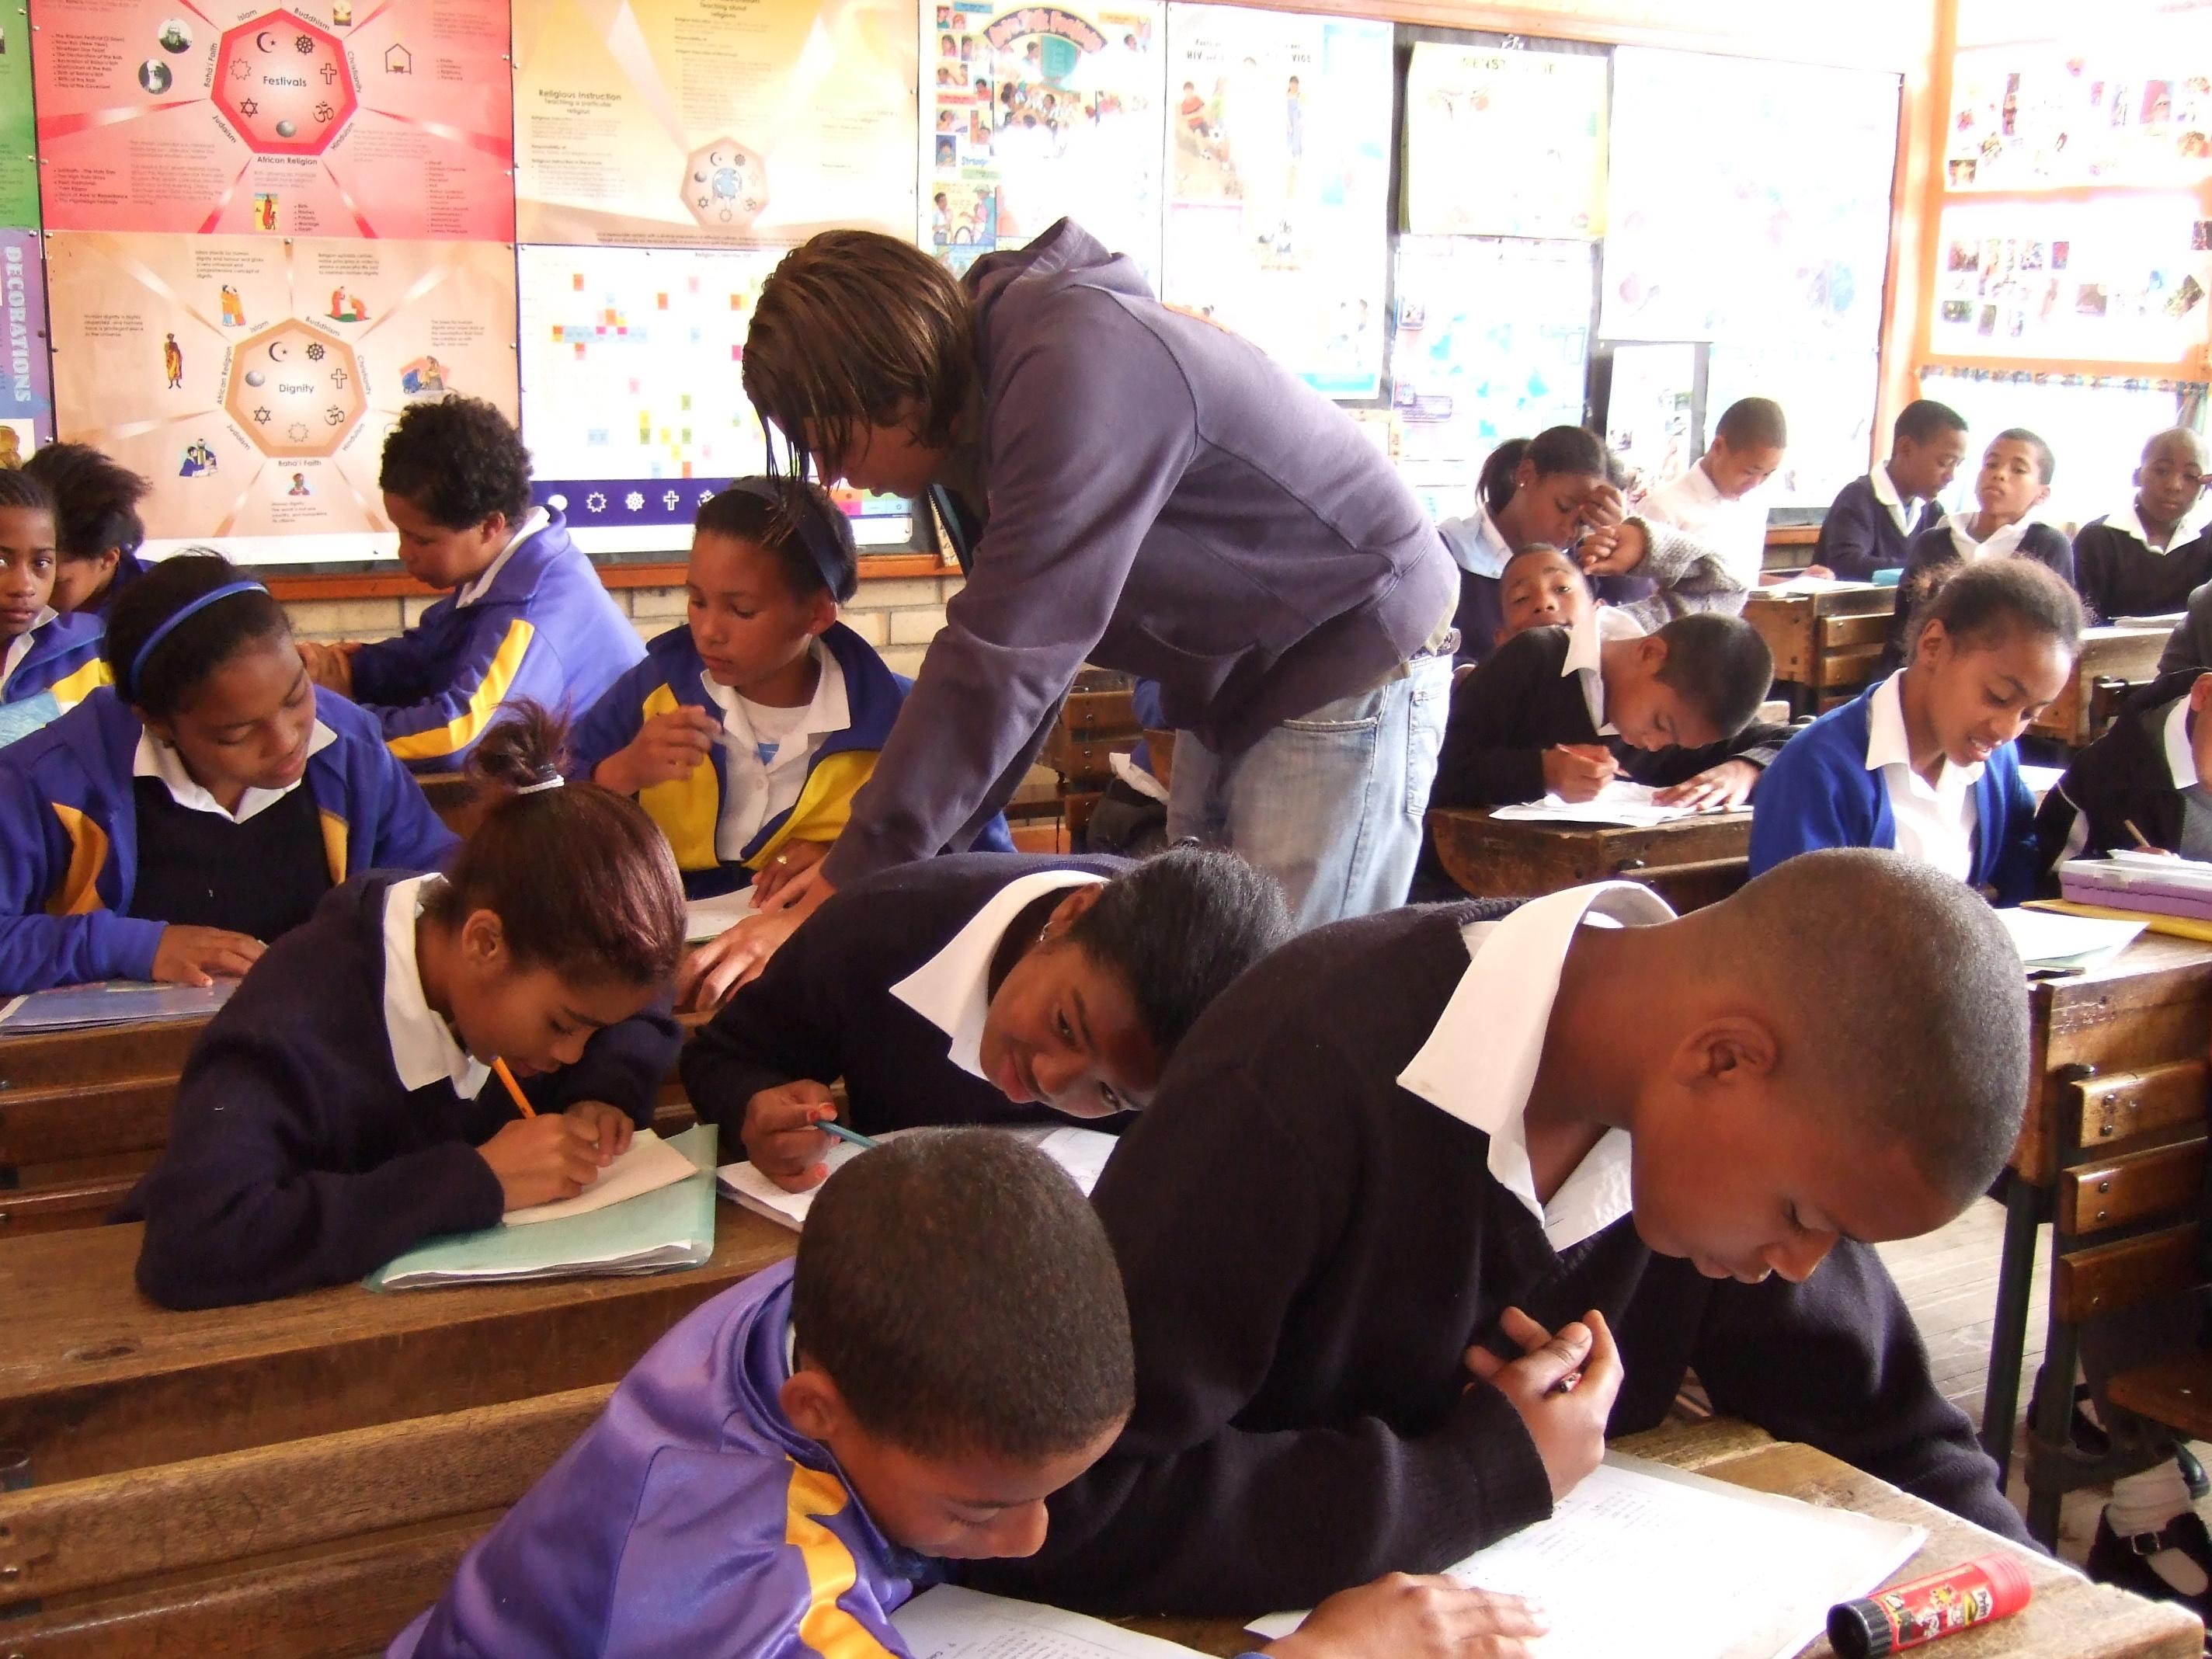 Students complete their classroom exercise while a volunteer assists during her teaching work experience in South Africa